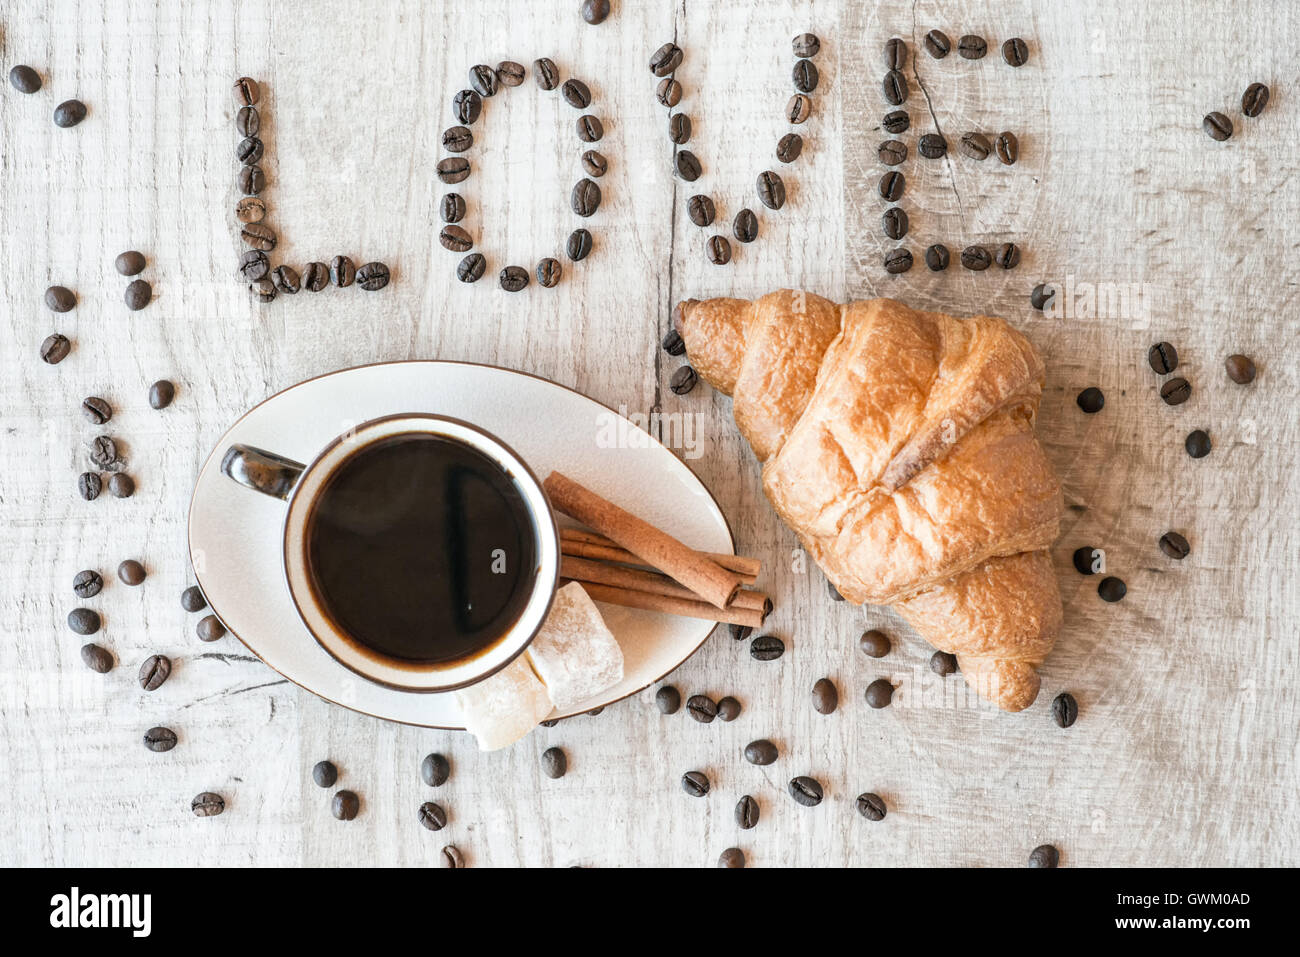 Cup of coffee with grains, croissant. title i love coffee. - Stock Image